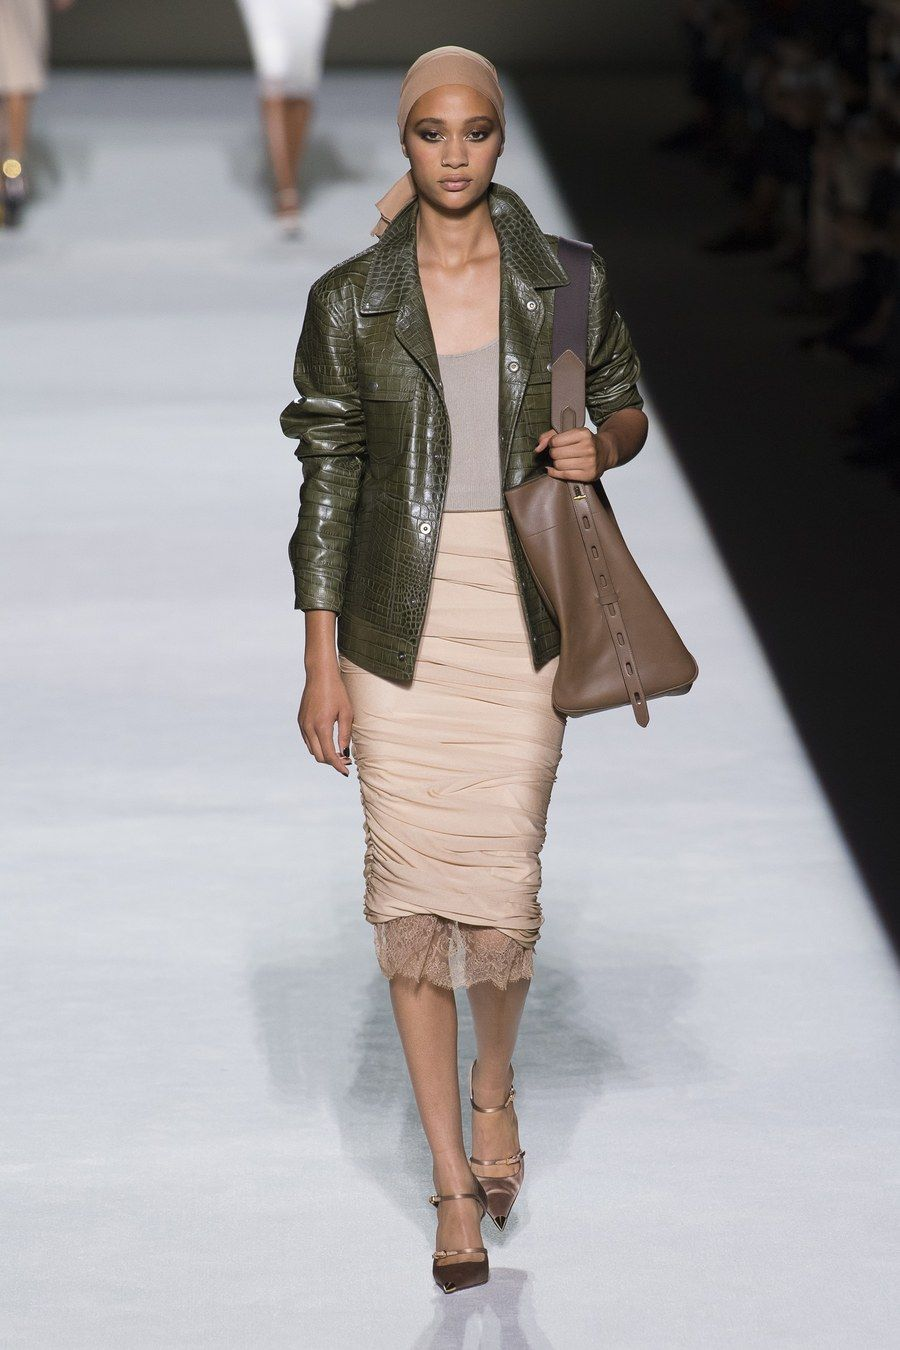 Discussion on this topic: DKNY SpringSummer 2019 Ready-To-Wear Collection Comes Flooded , dkny-springsummer-2019-ready-to-wear-collection-comes-flooded/